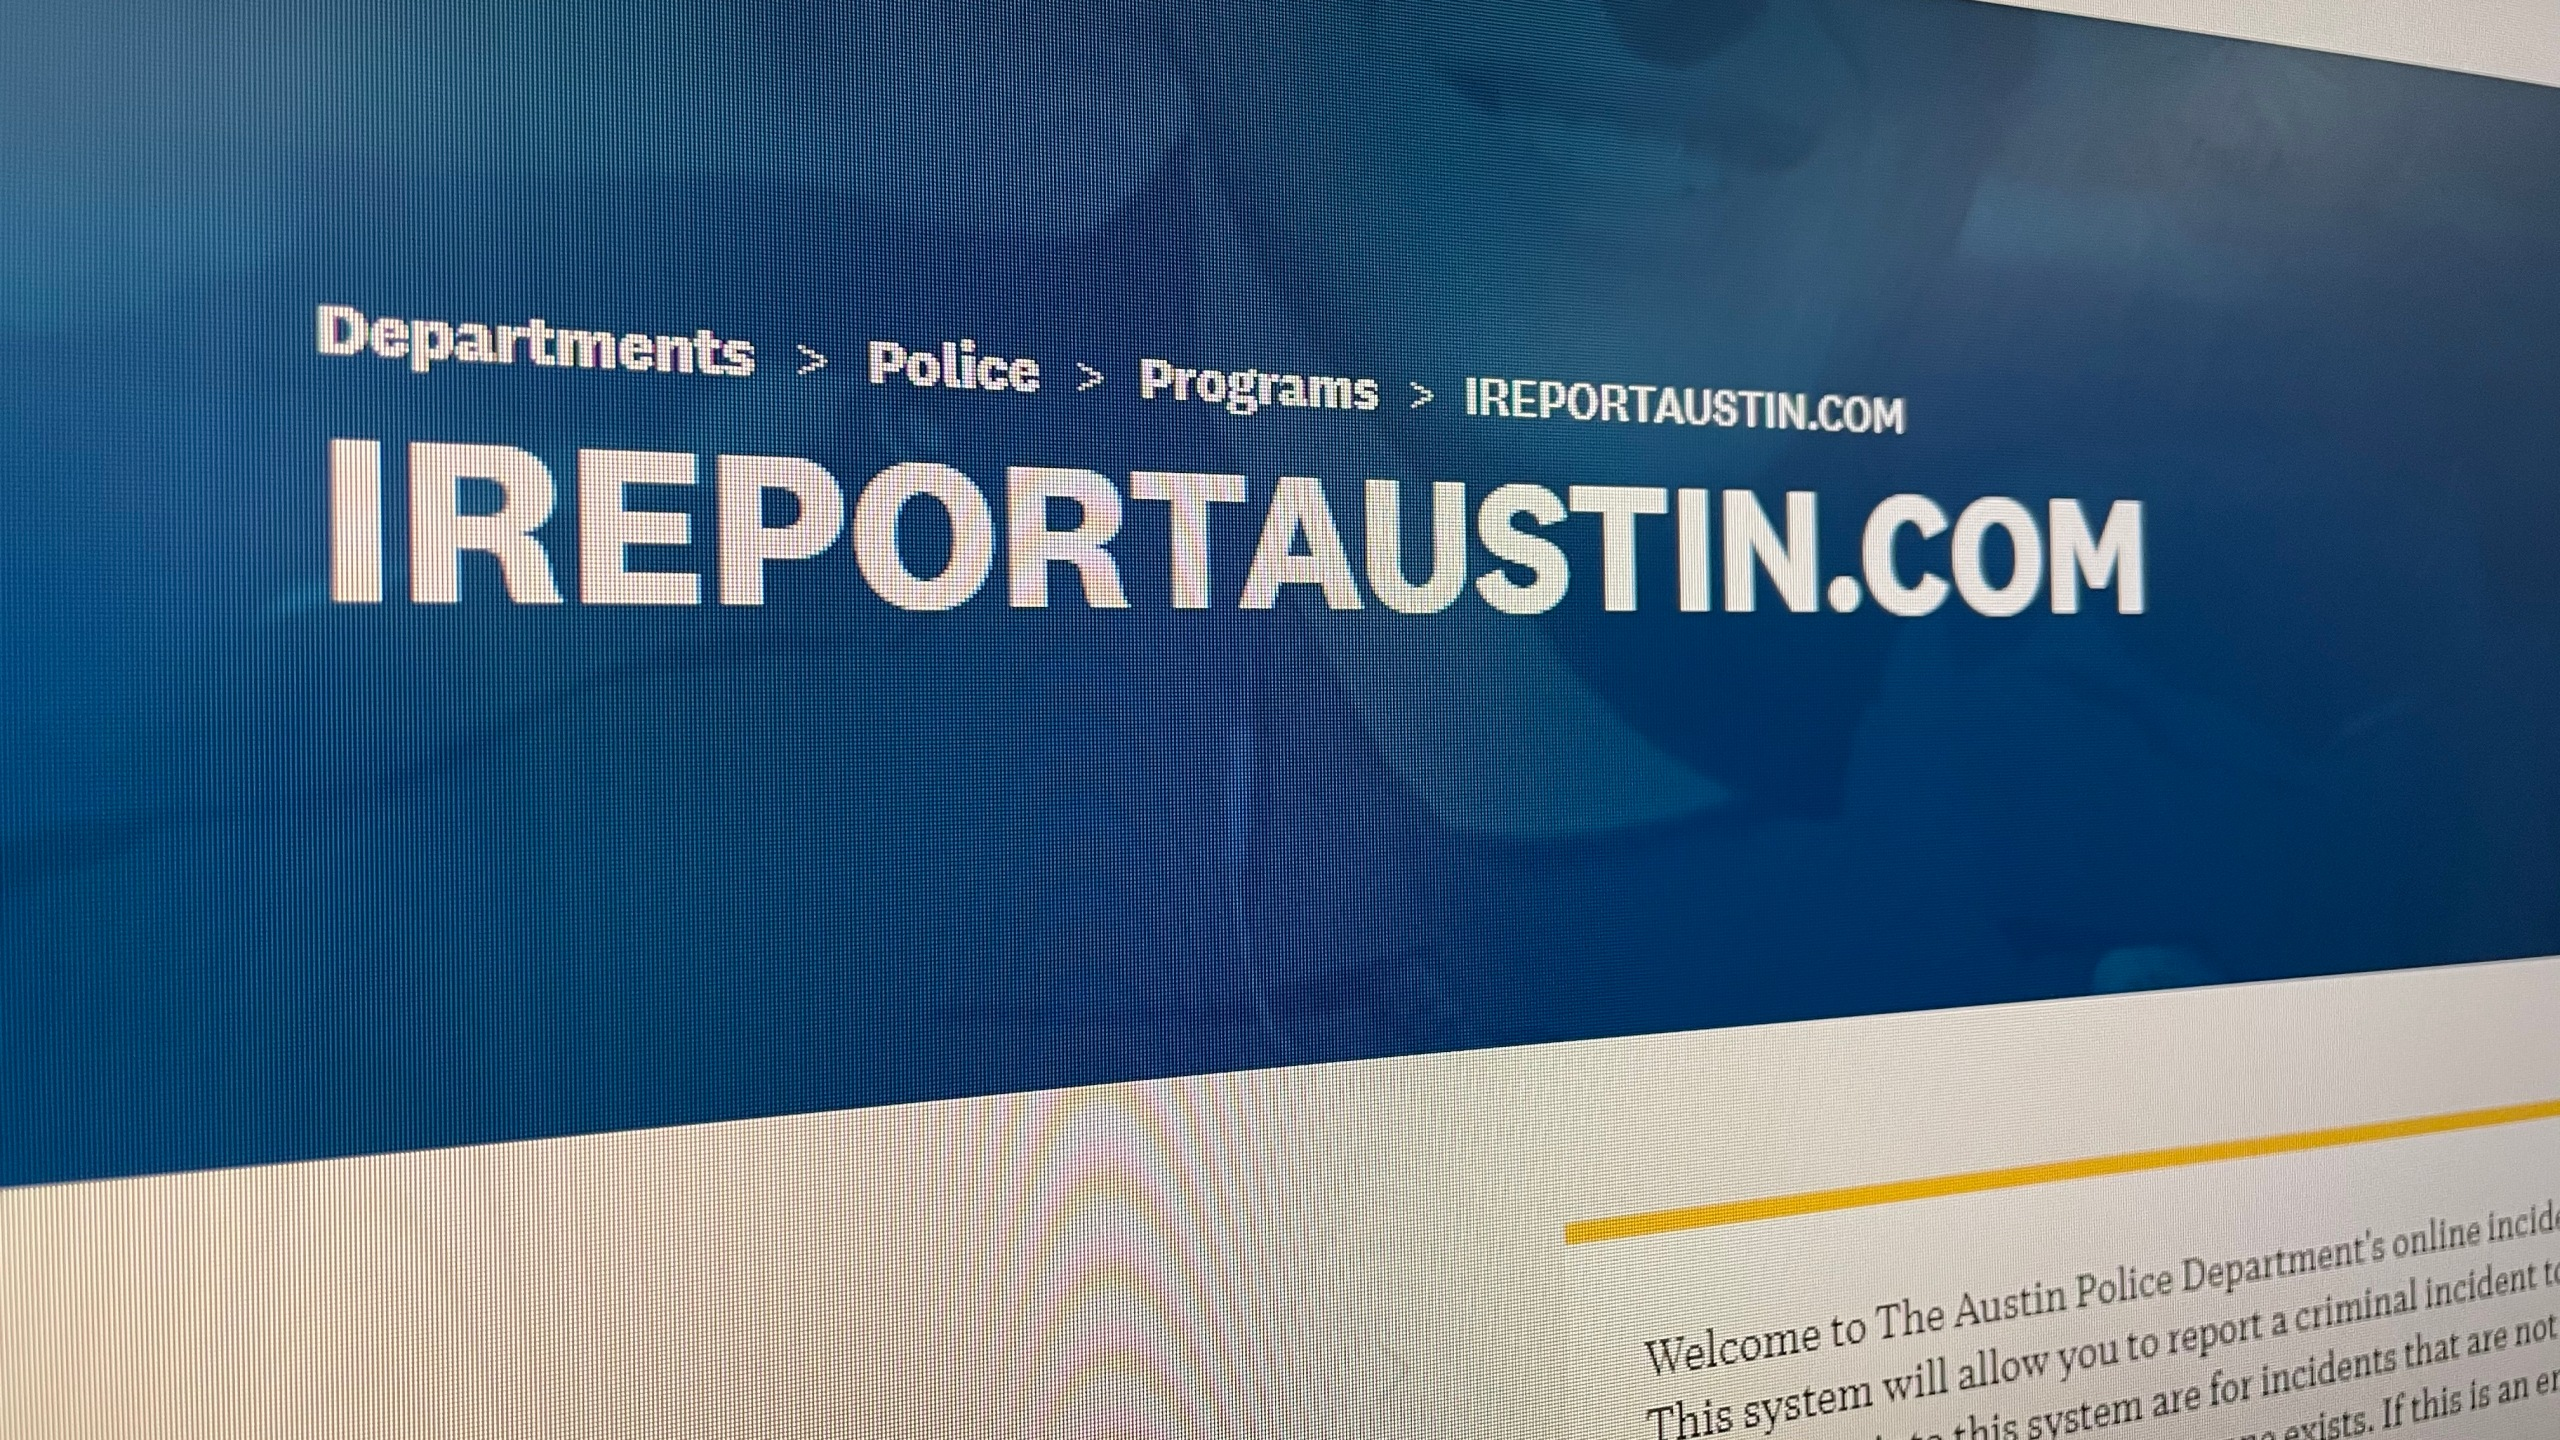 Photo of website to make a crime report with Austin Police Department (KXAN Photo/Jaclyn Ramkissoon)